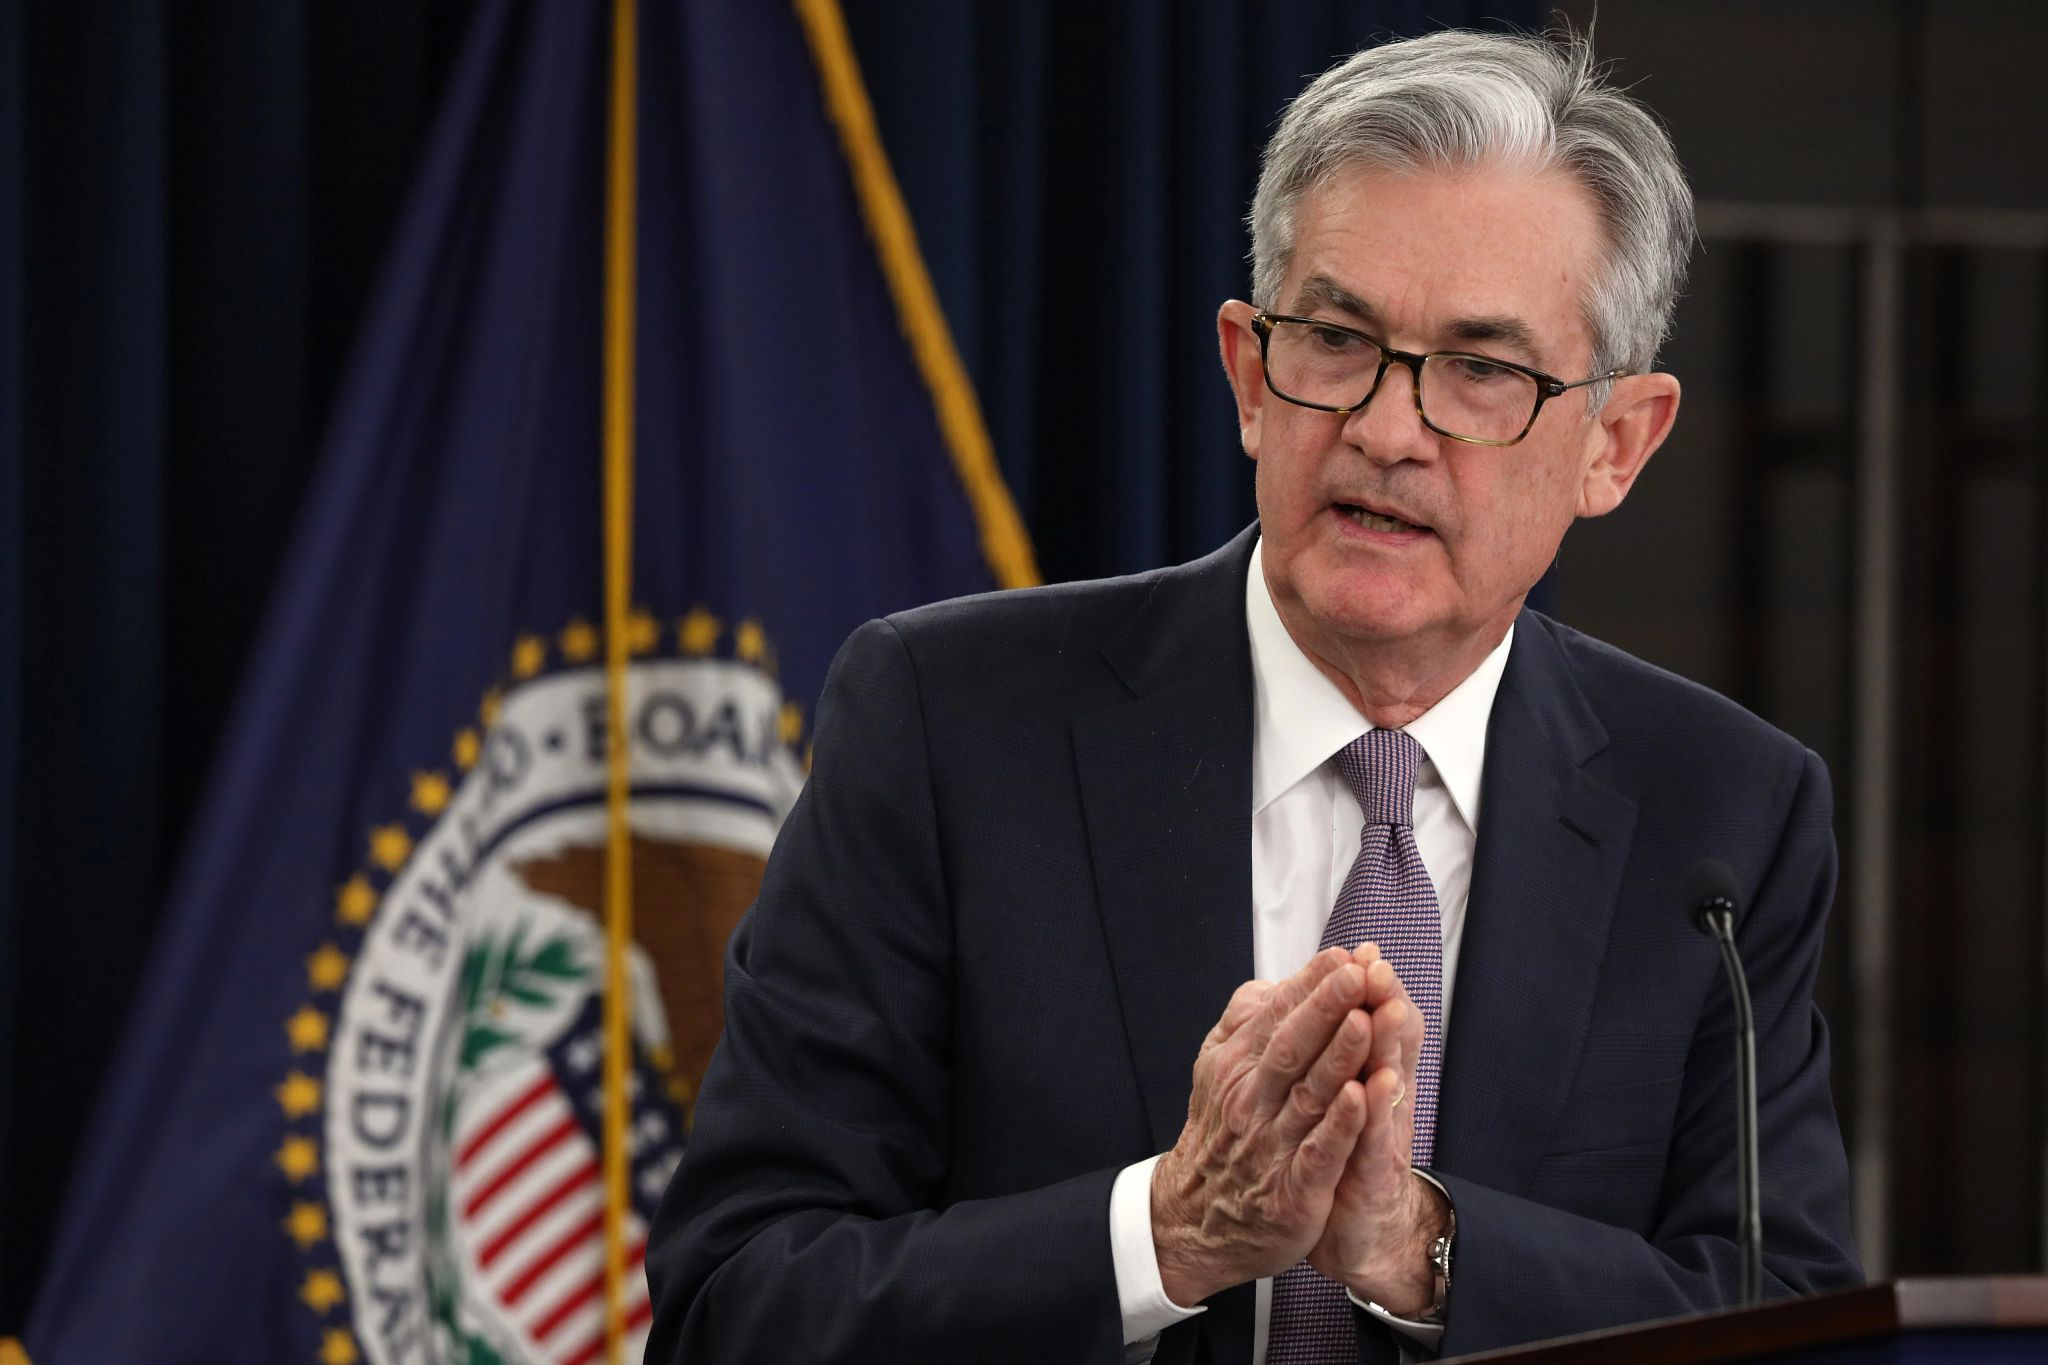 Jerome Powell, chairman of the U.S. Federal Reserve, speaks during a news conference earlier this year. (Getty Images)